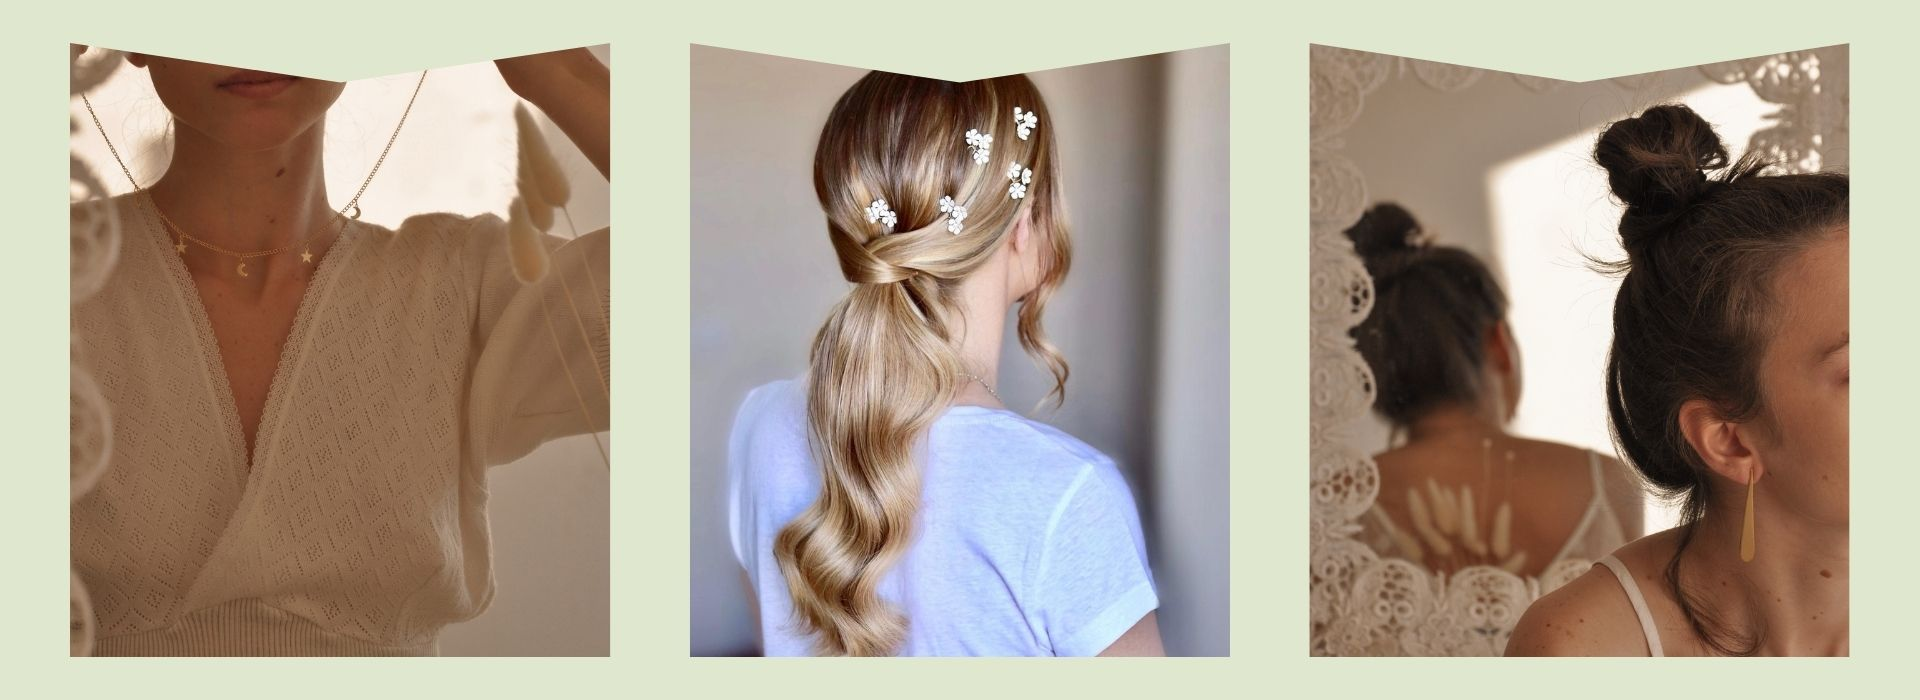 Gold necklace, flower braid, gold earrings